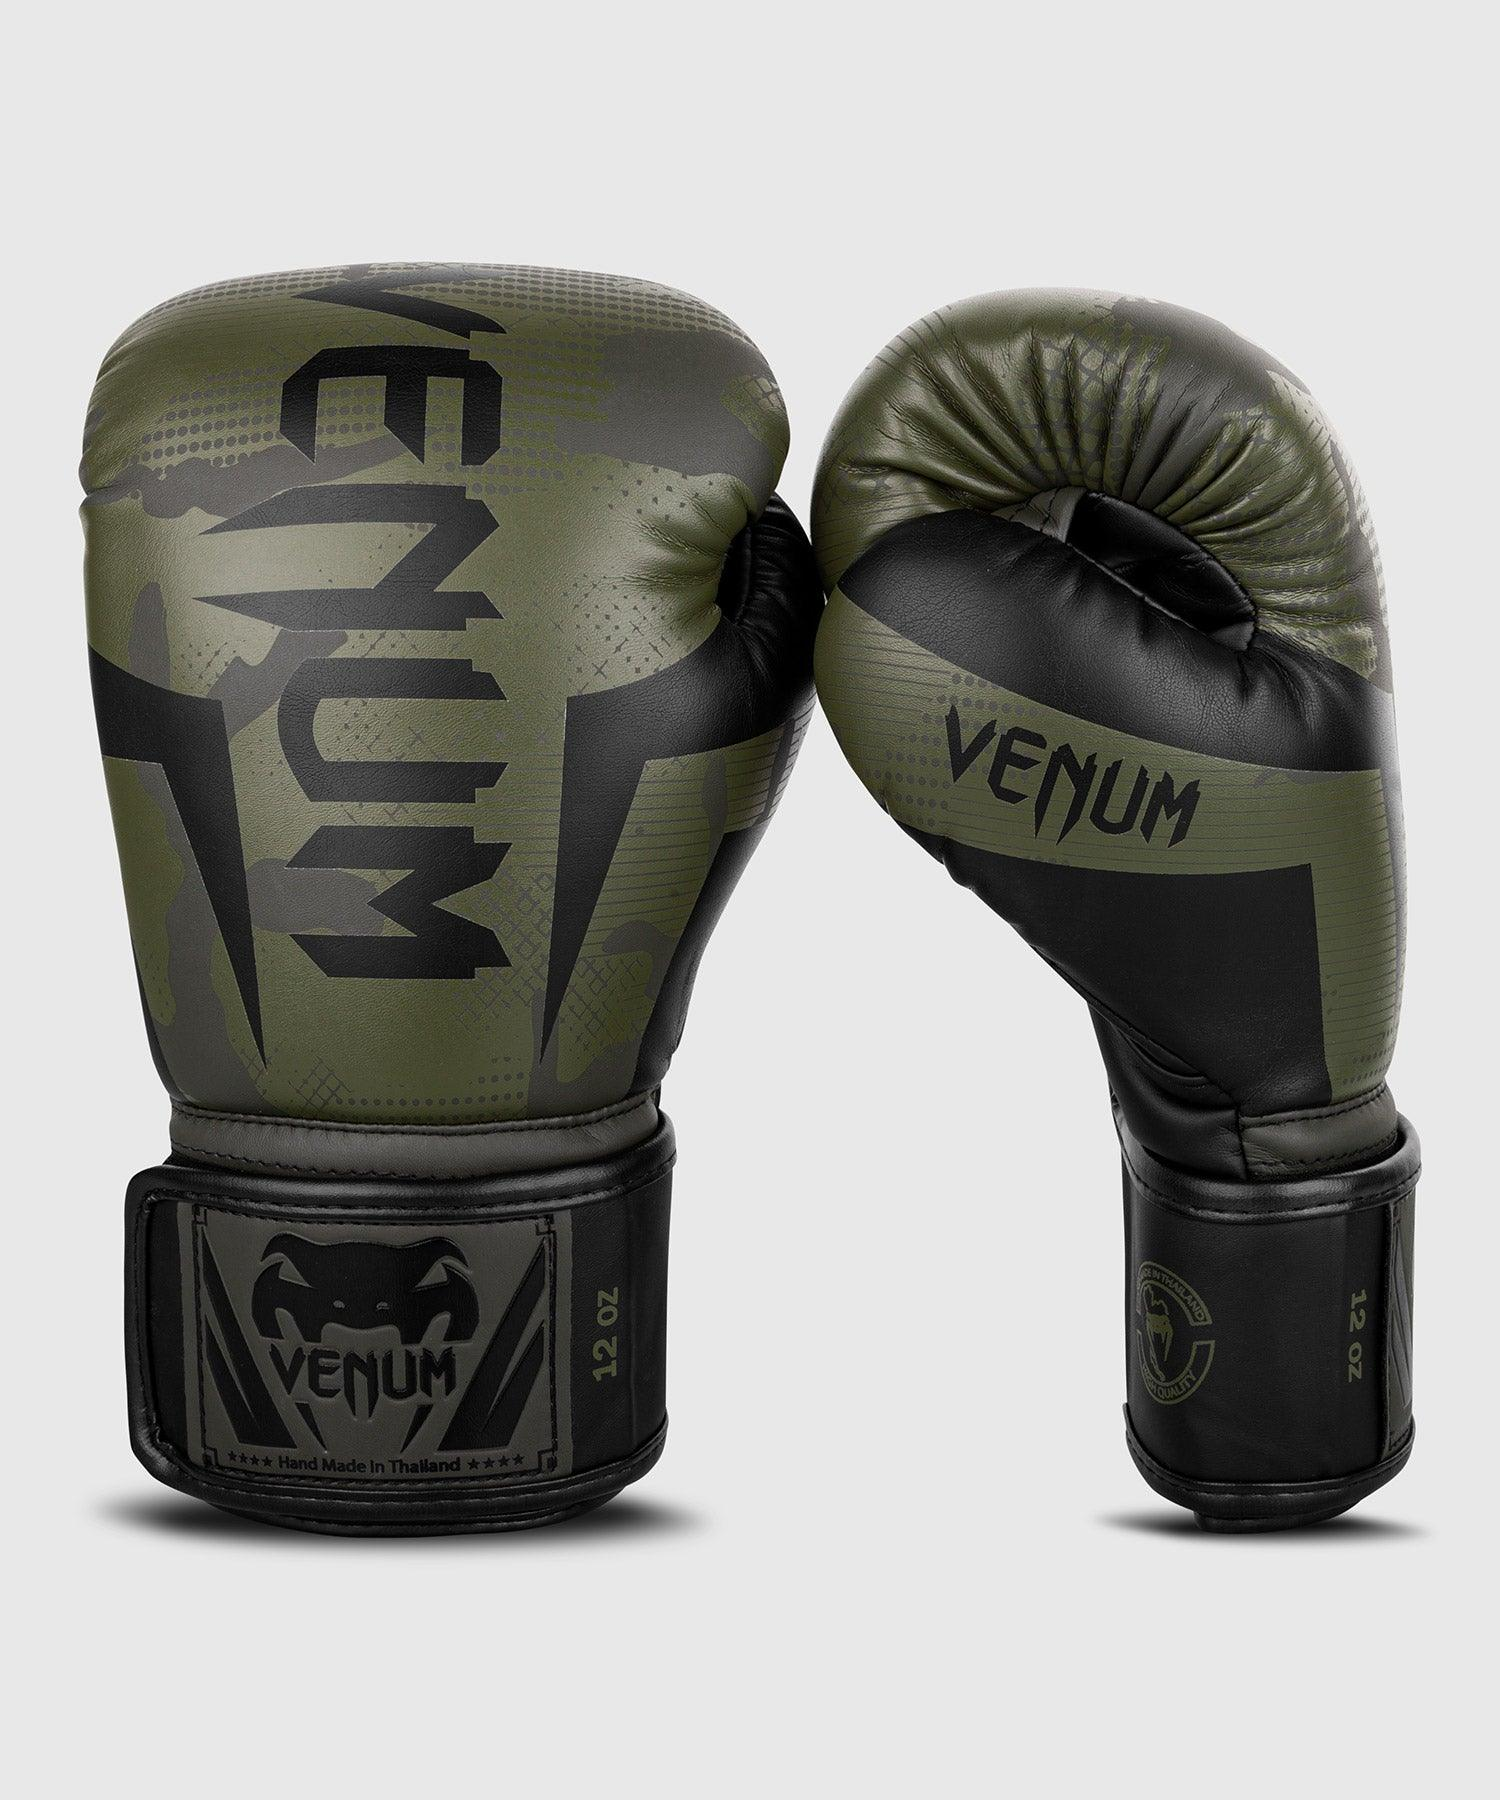 Venum Elite Boxing Gloves - Khaki camo picture 1